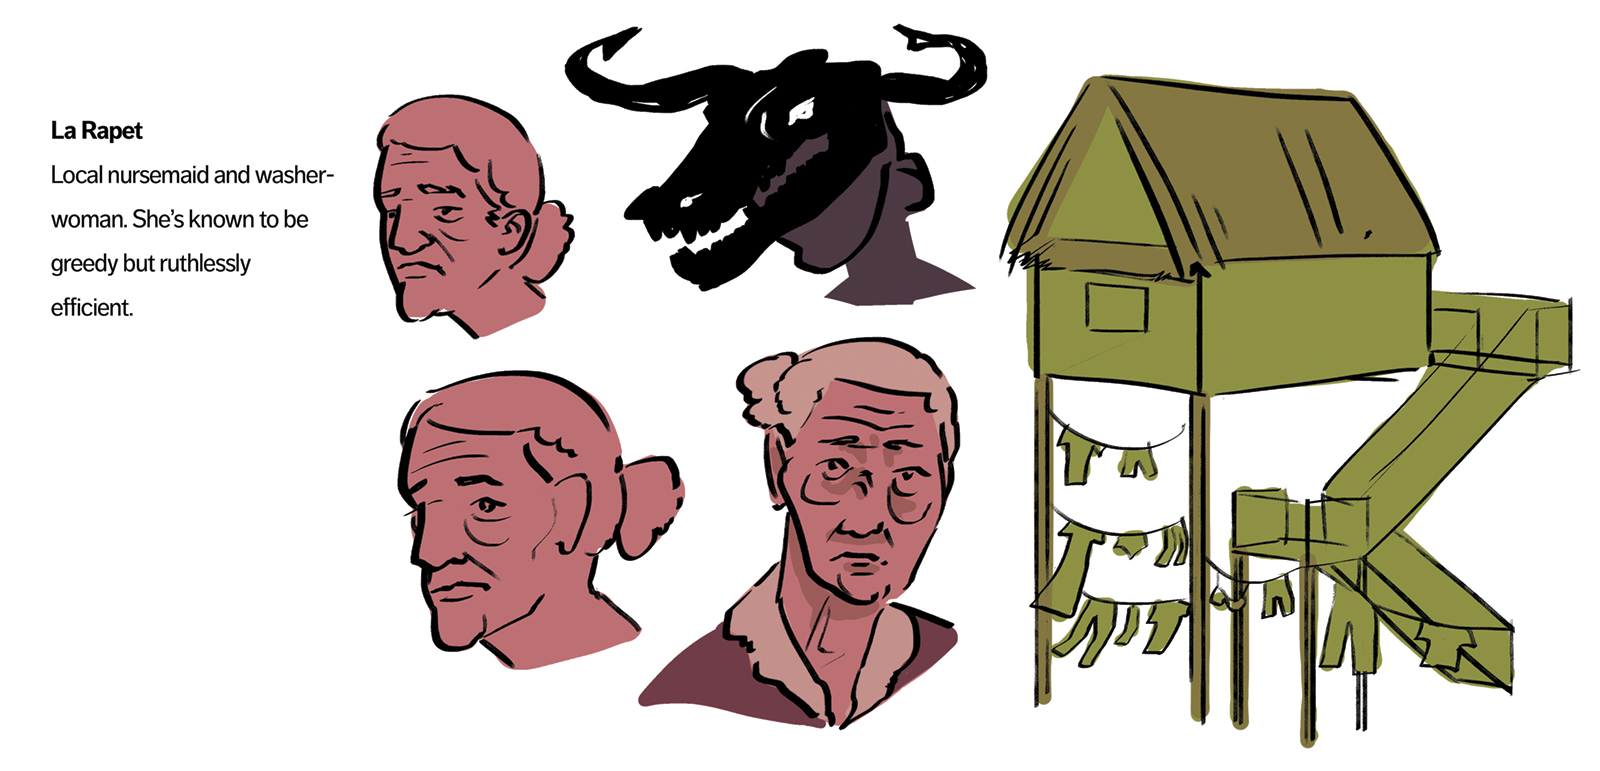 La Rapet concept art. Rapet is an elderly washerwoman from the bayou's edge. She is shown in regular clothes and as the devil.